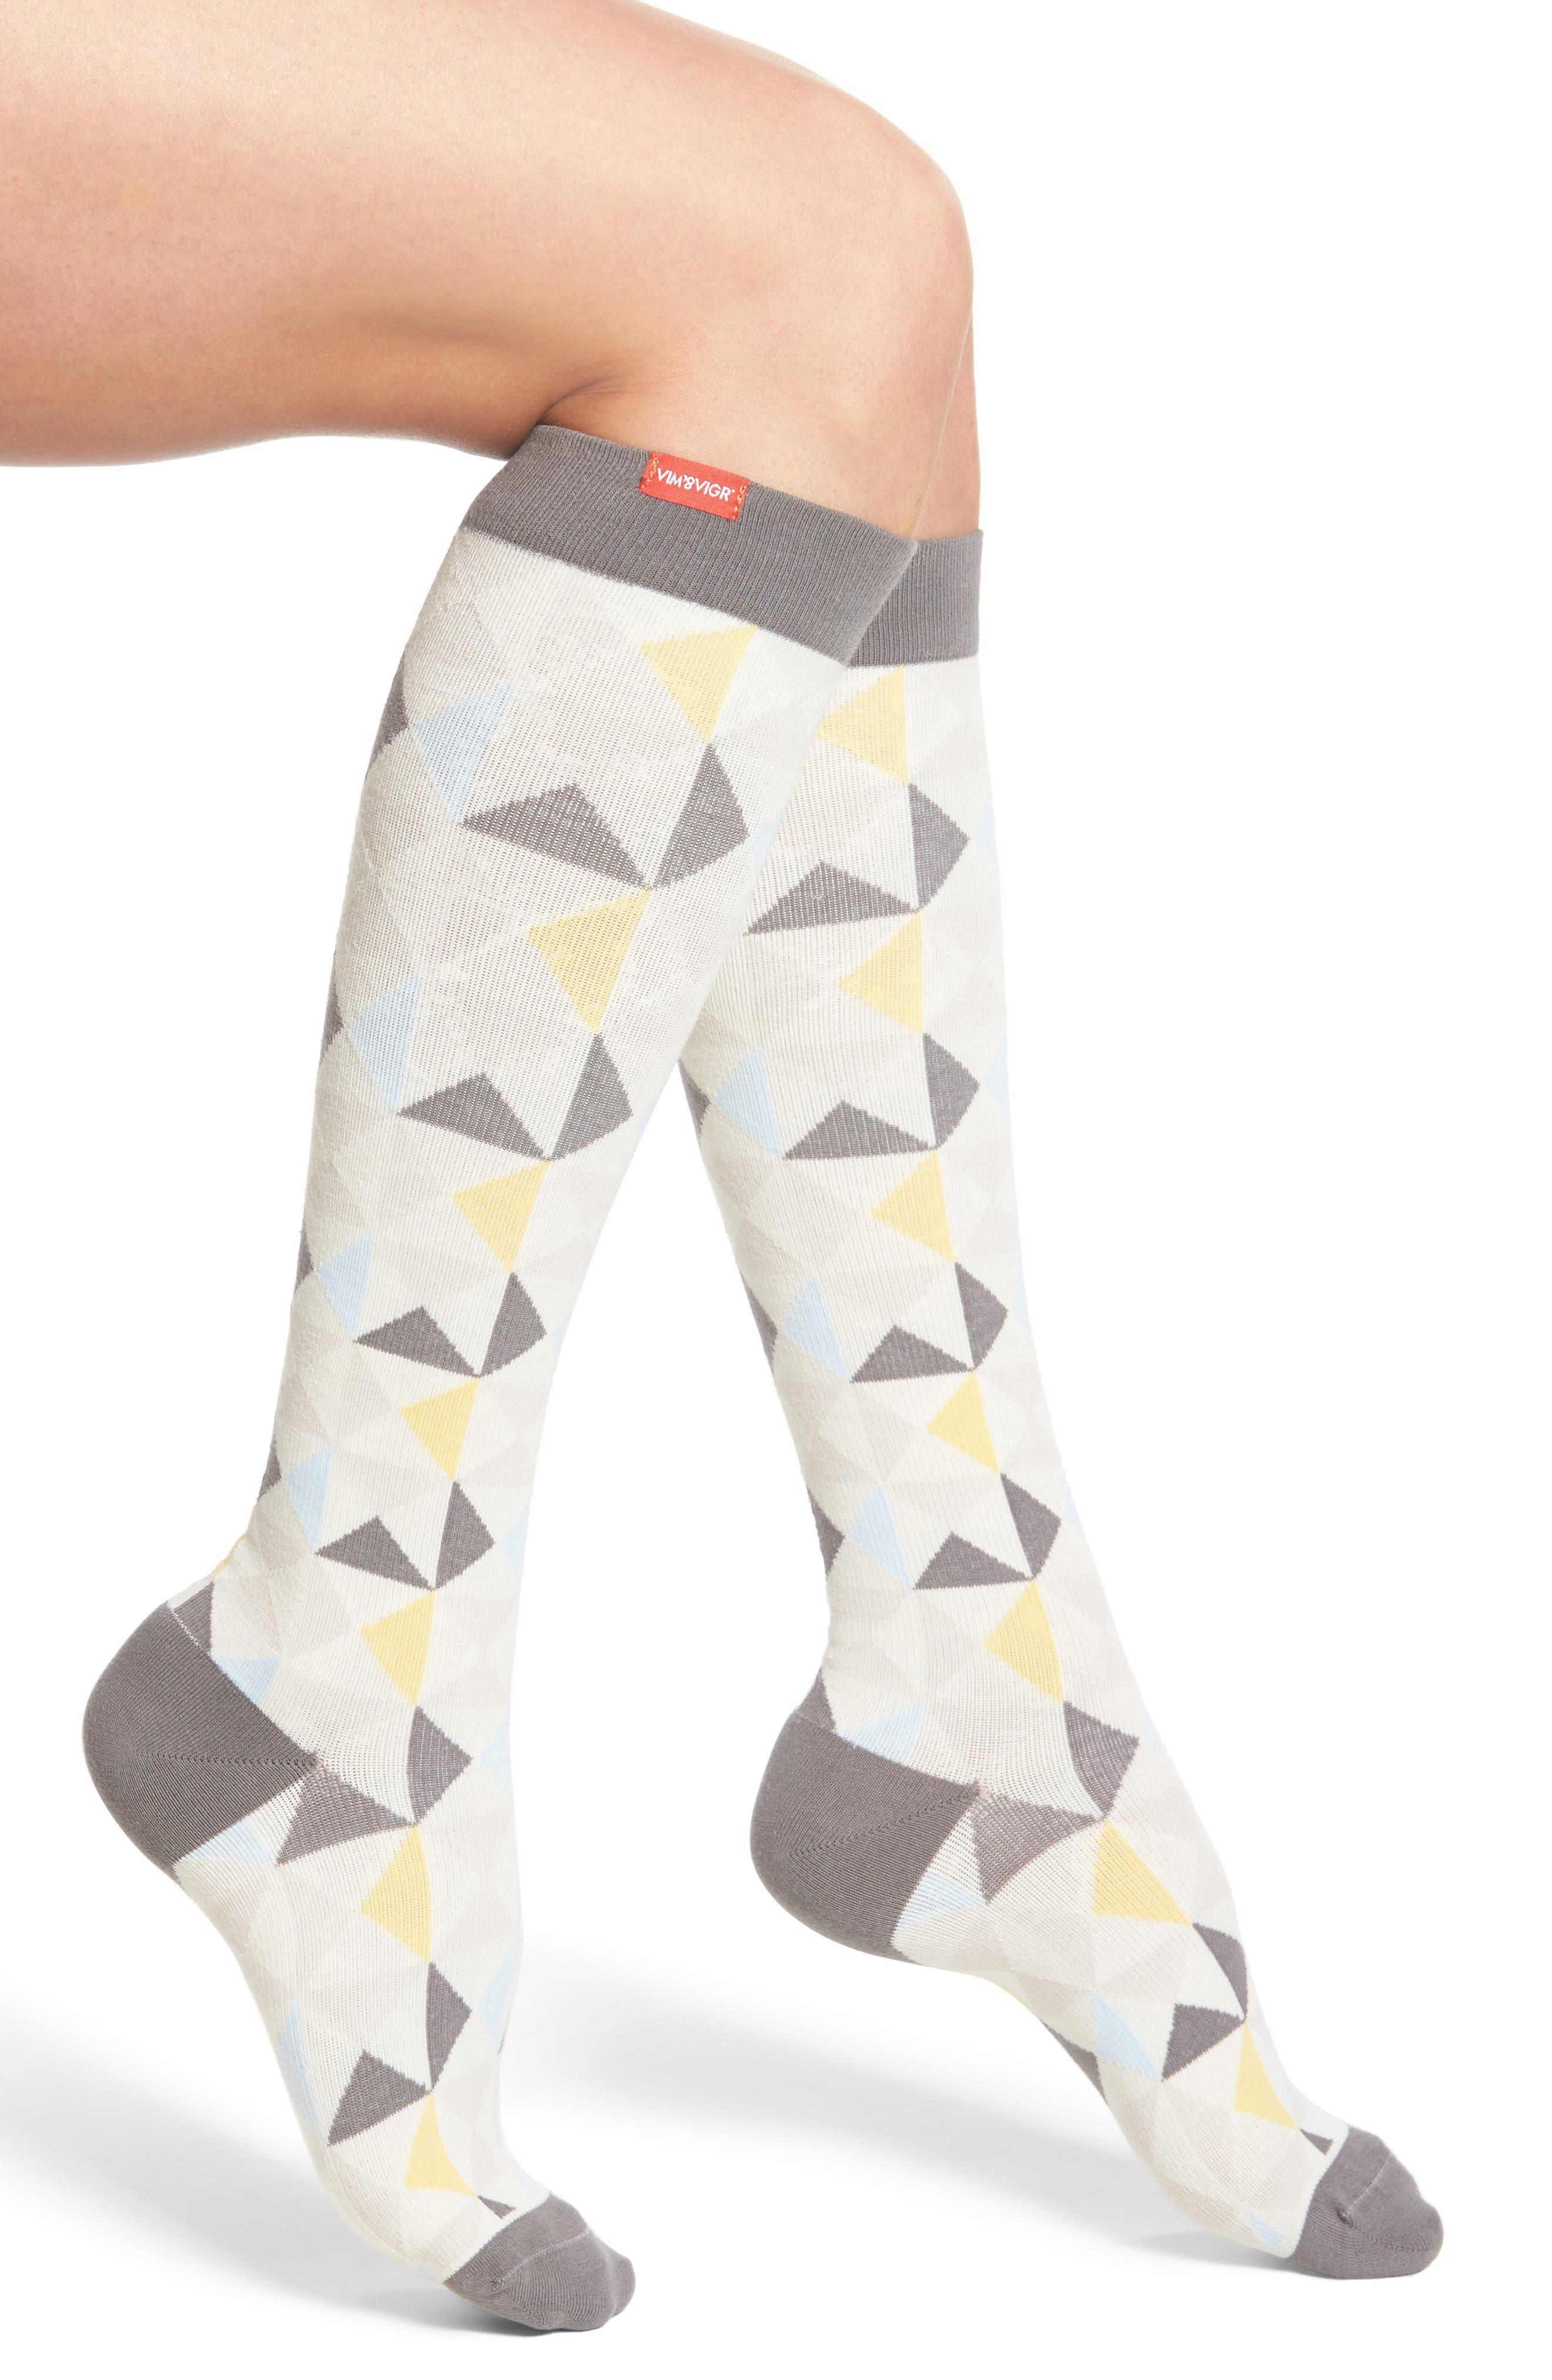 Compression Knee High Socks,                             Main thumbnail 1, color,